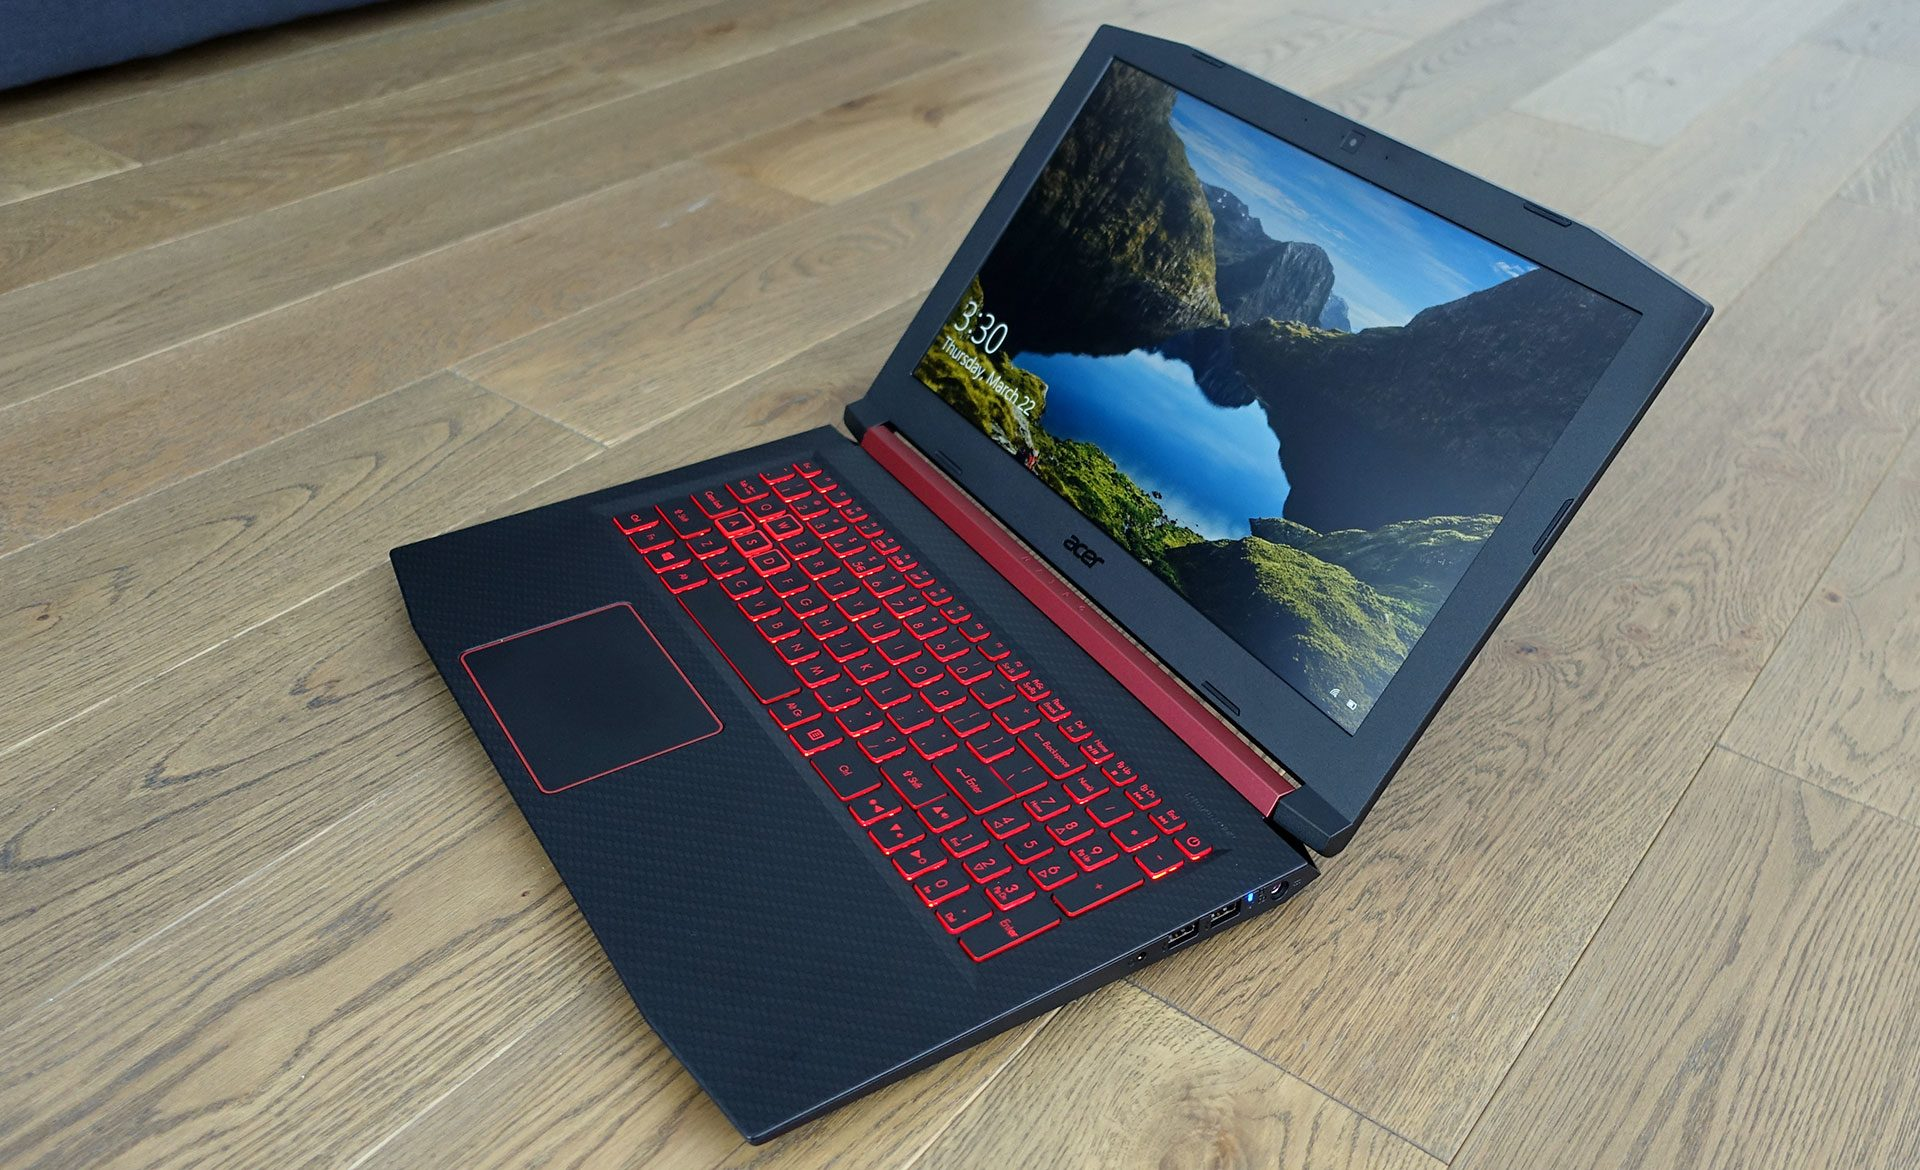 Acer Nitro 5 review (AN515-52 - Core i5, Nvidia GTX 1050 Ti)